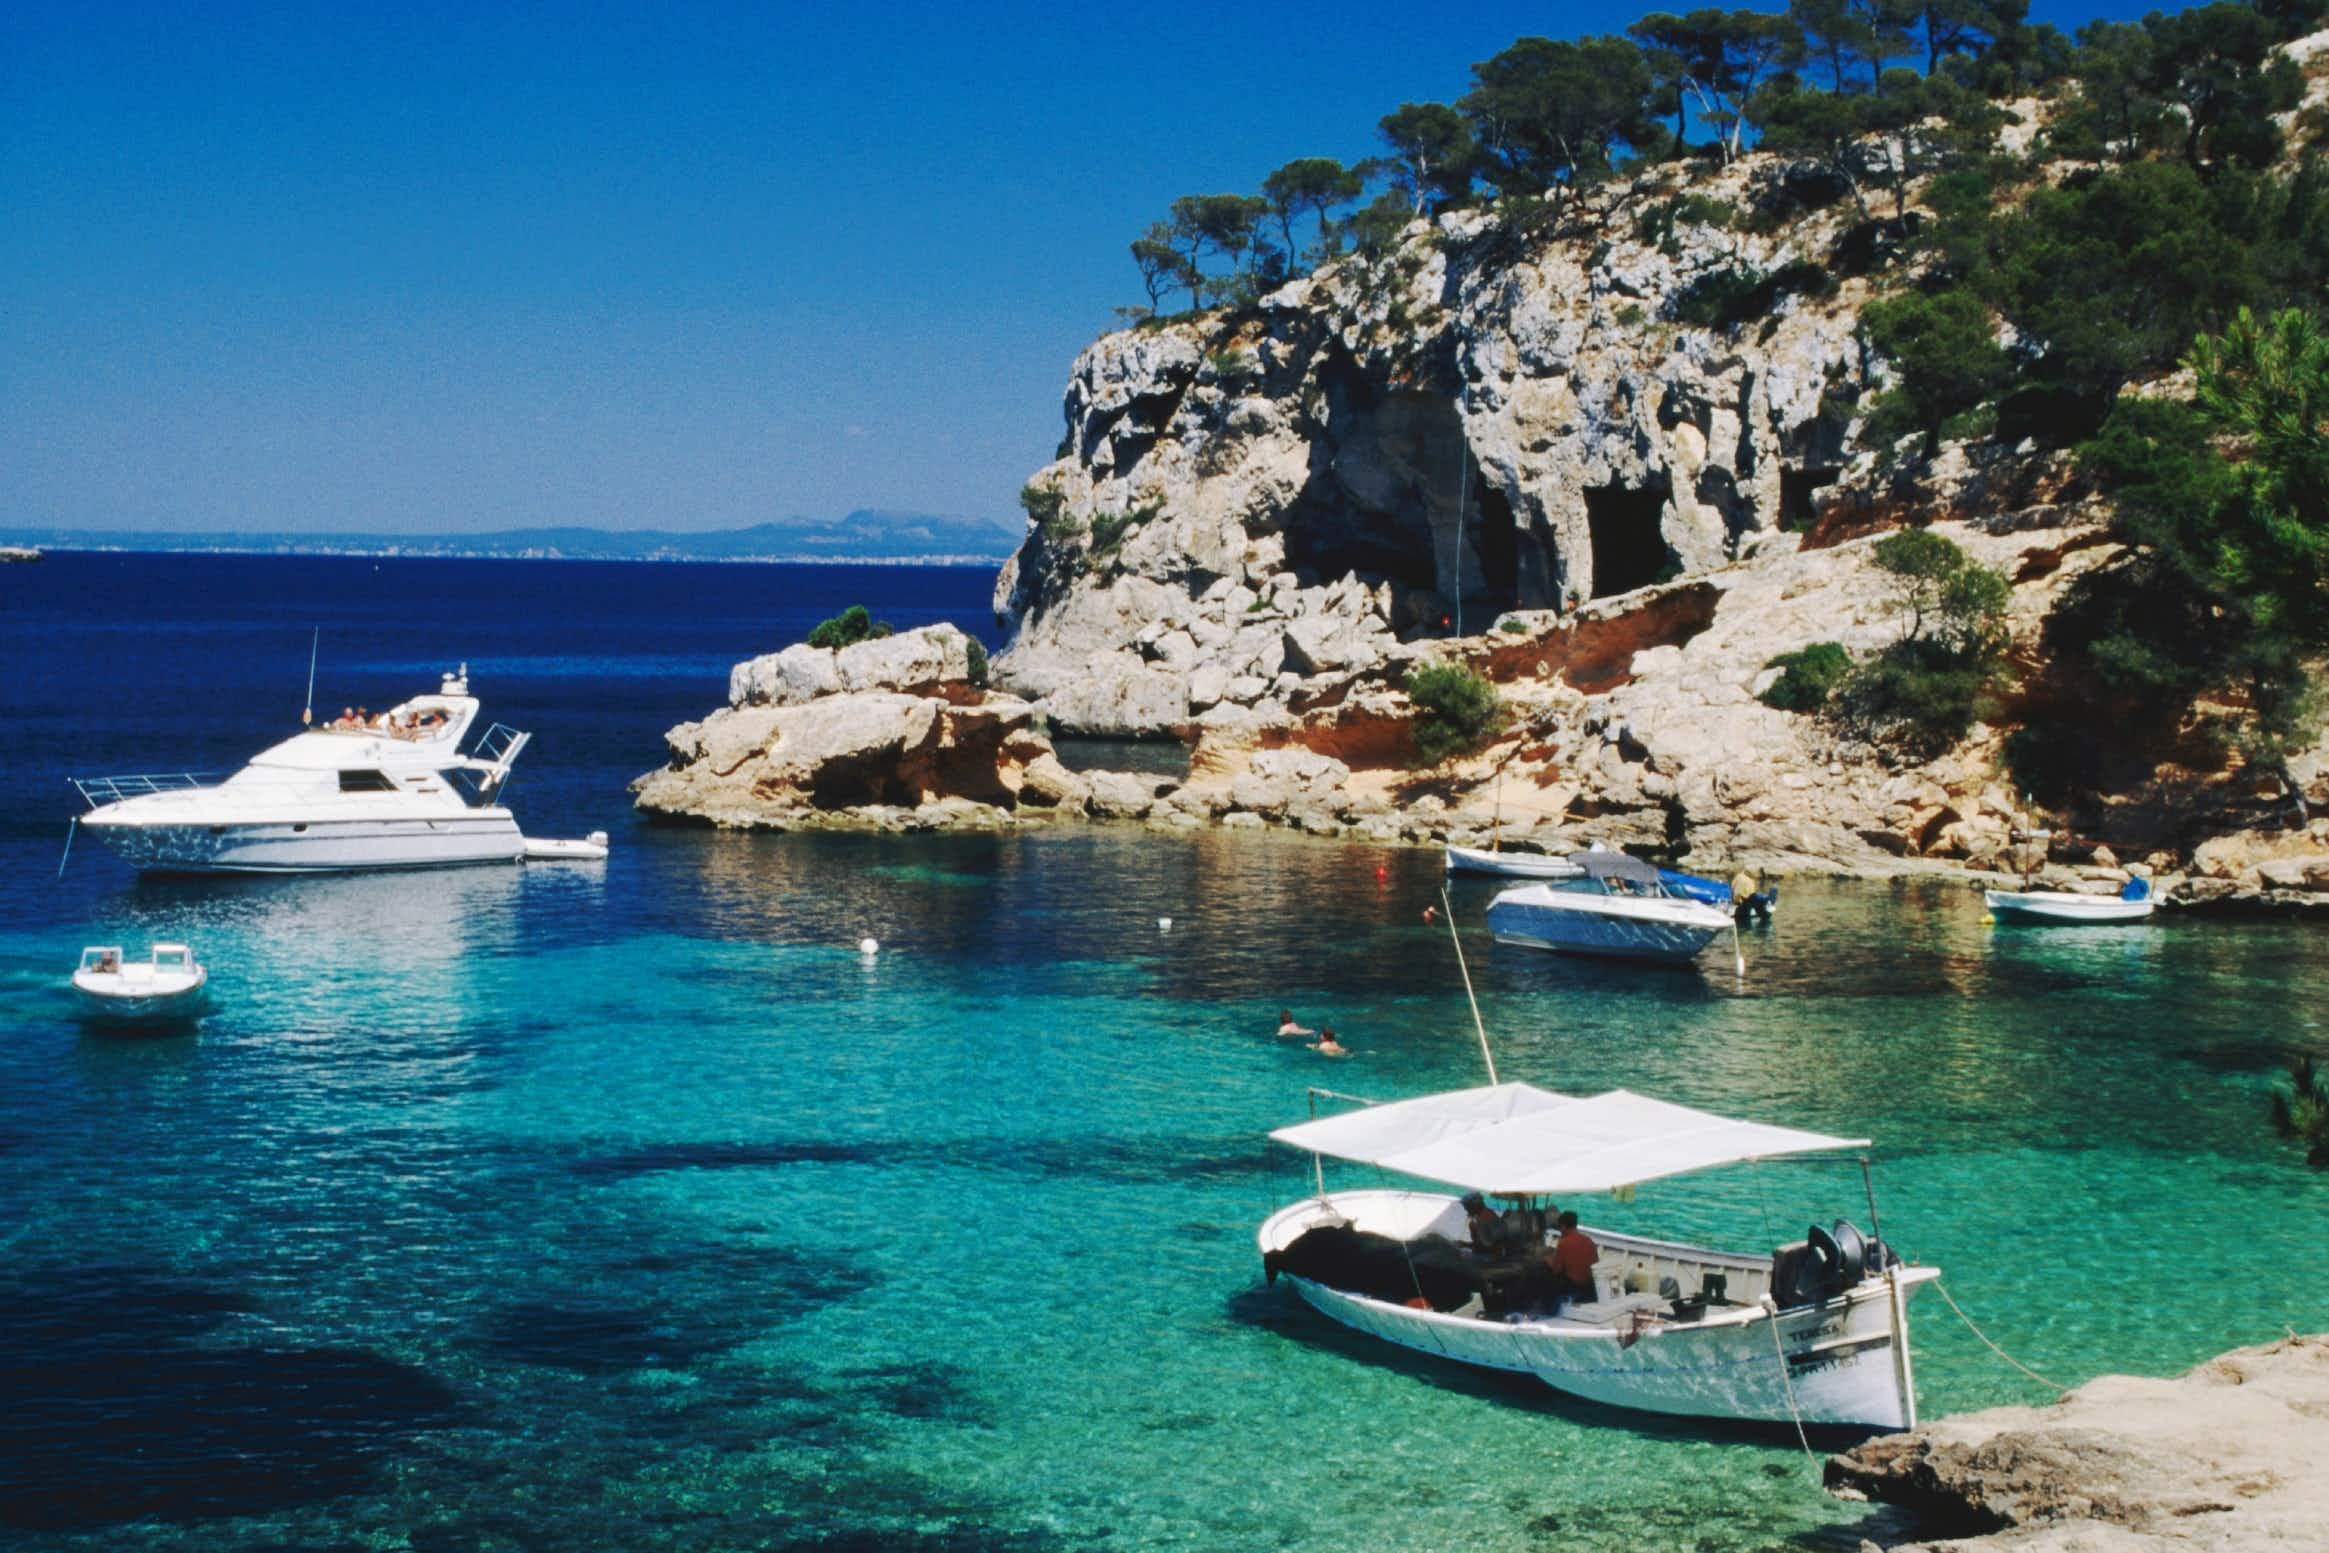 Here's why the Balearic Islands want visitors to help conserve water